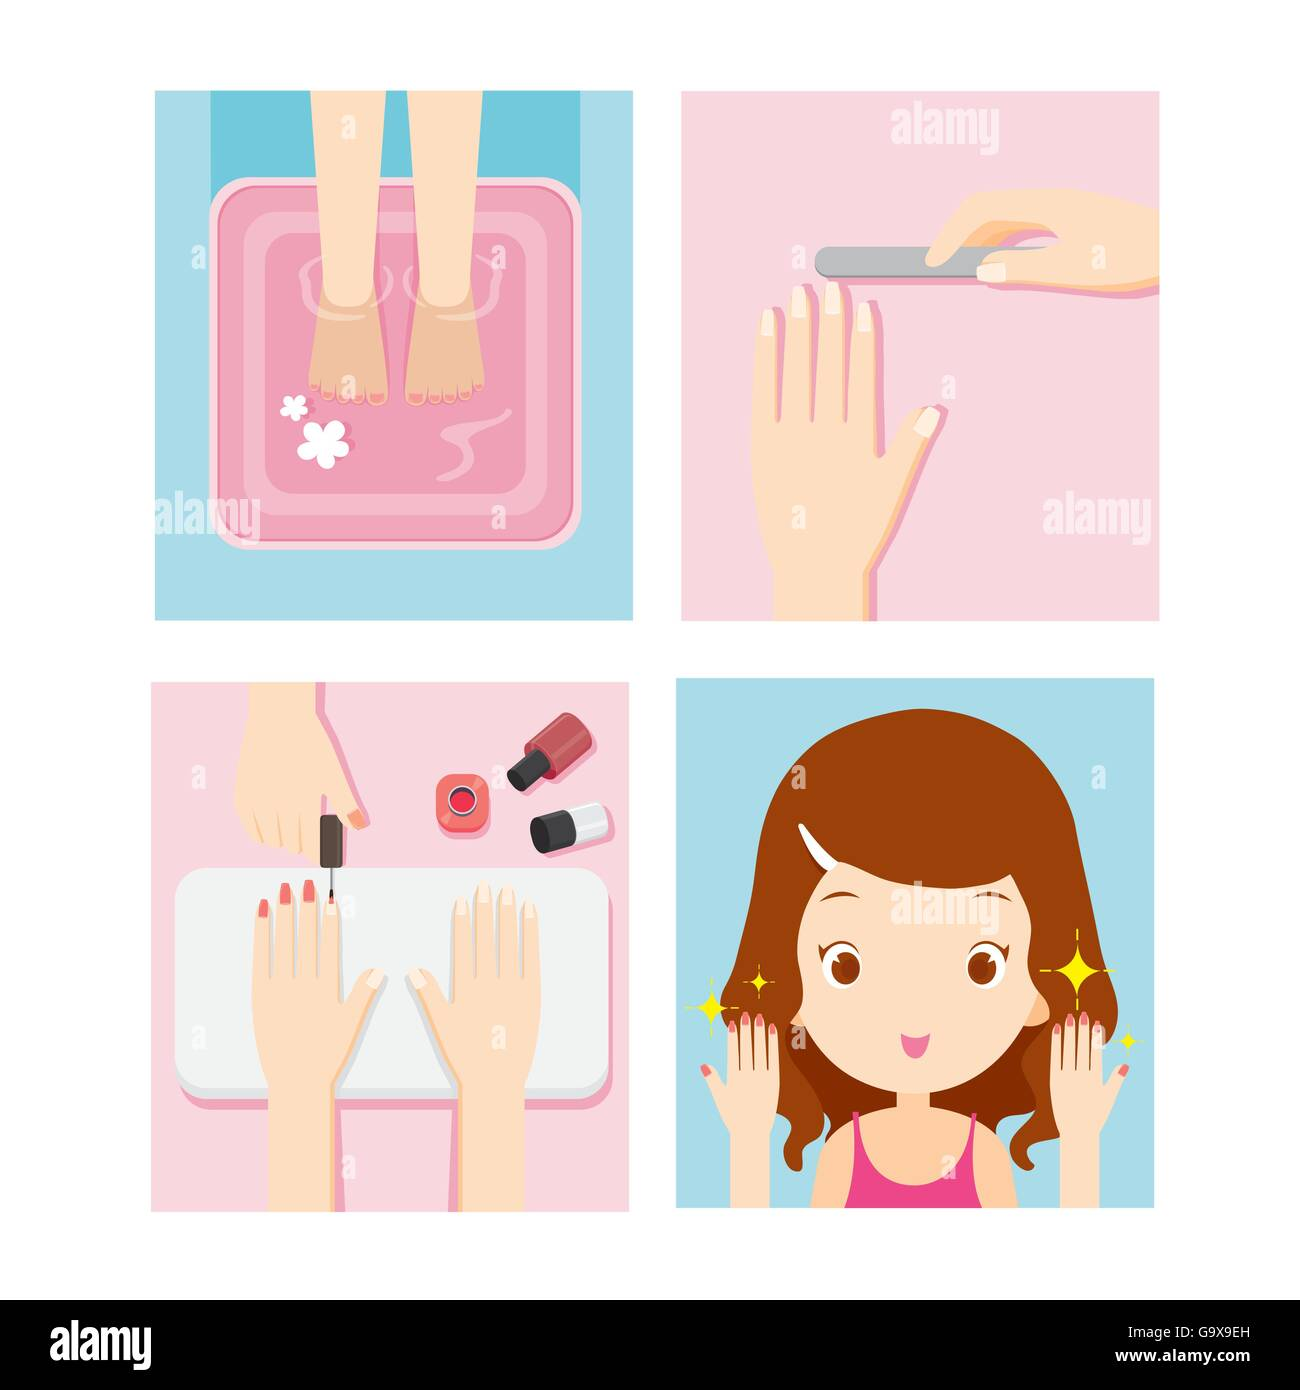 Cartoon Nail Cut Out Stock Images & Pictures - Alamy